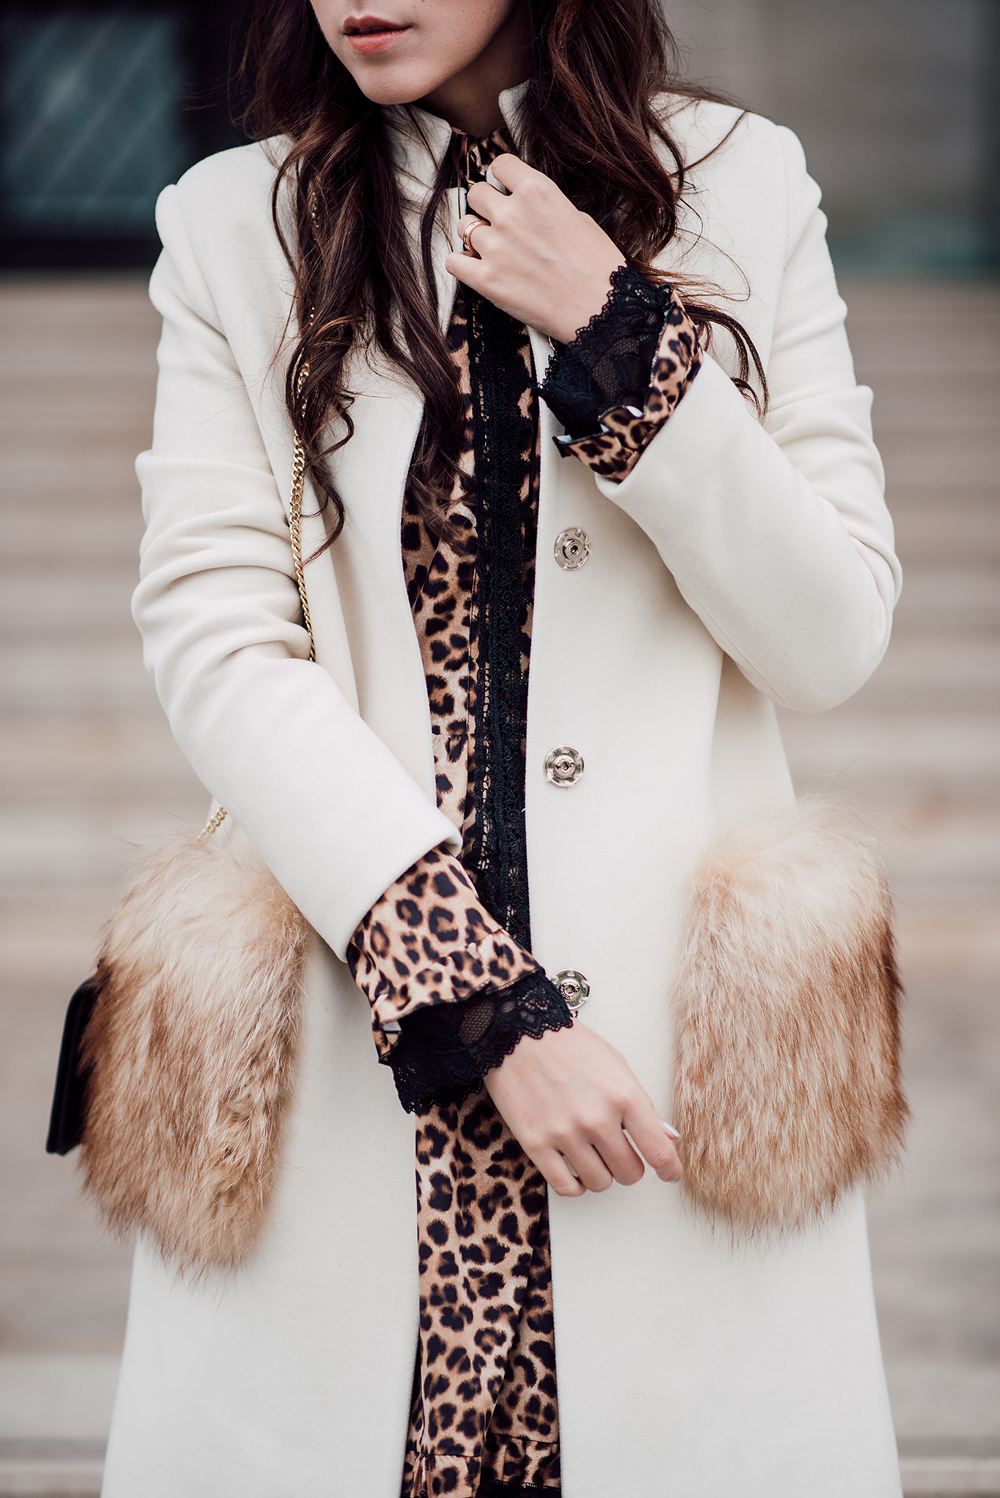 eva-ahacevcic_love-eva_terminal3_ootd_leopard-print_dress_fashion-blogger-5